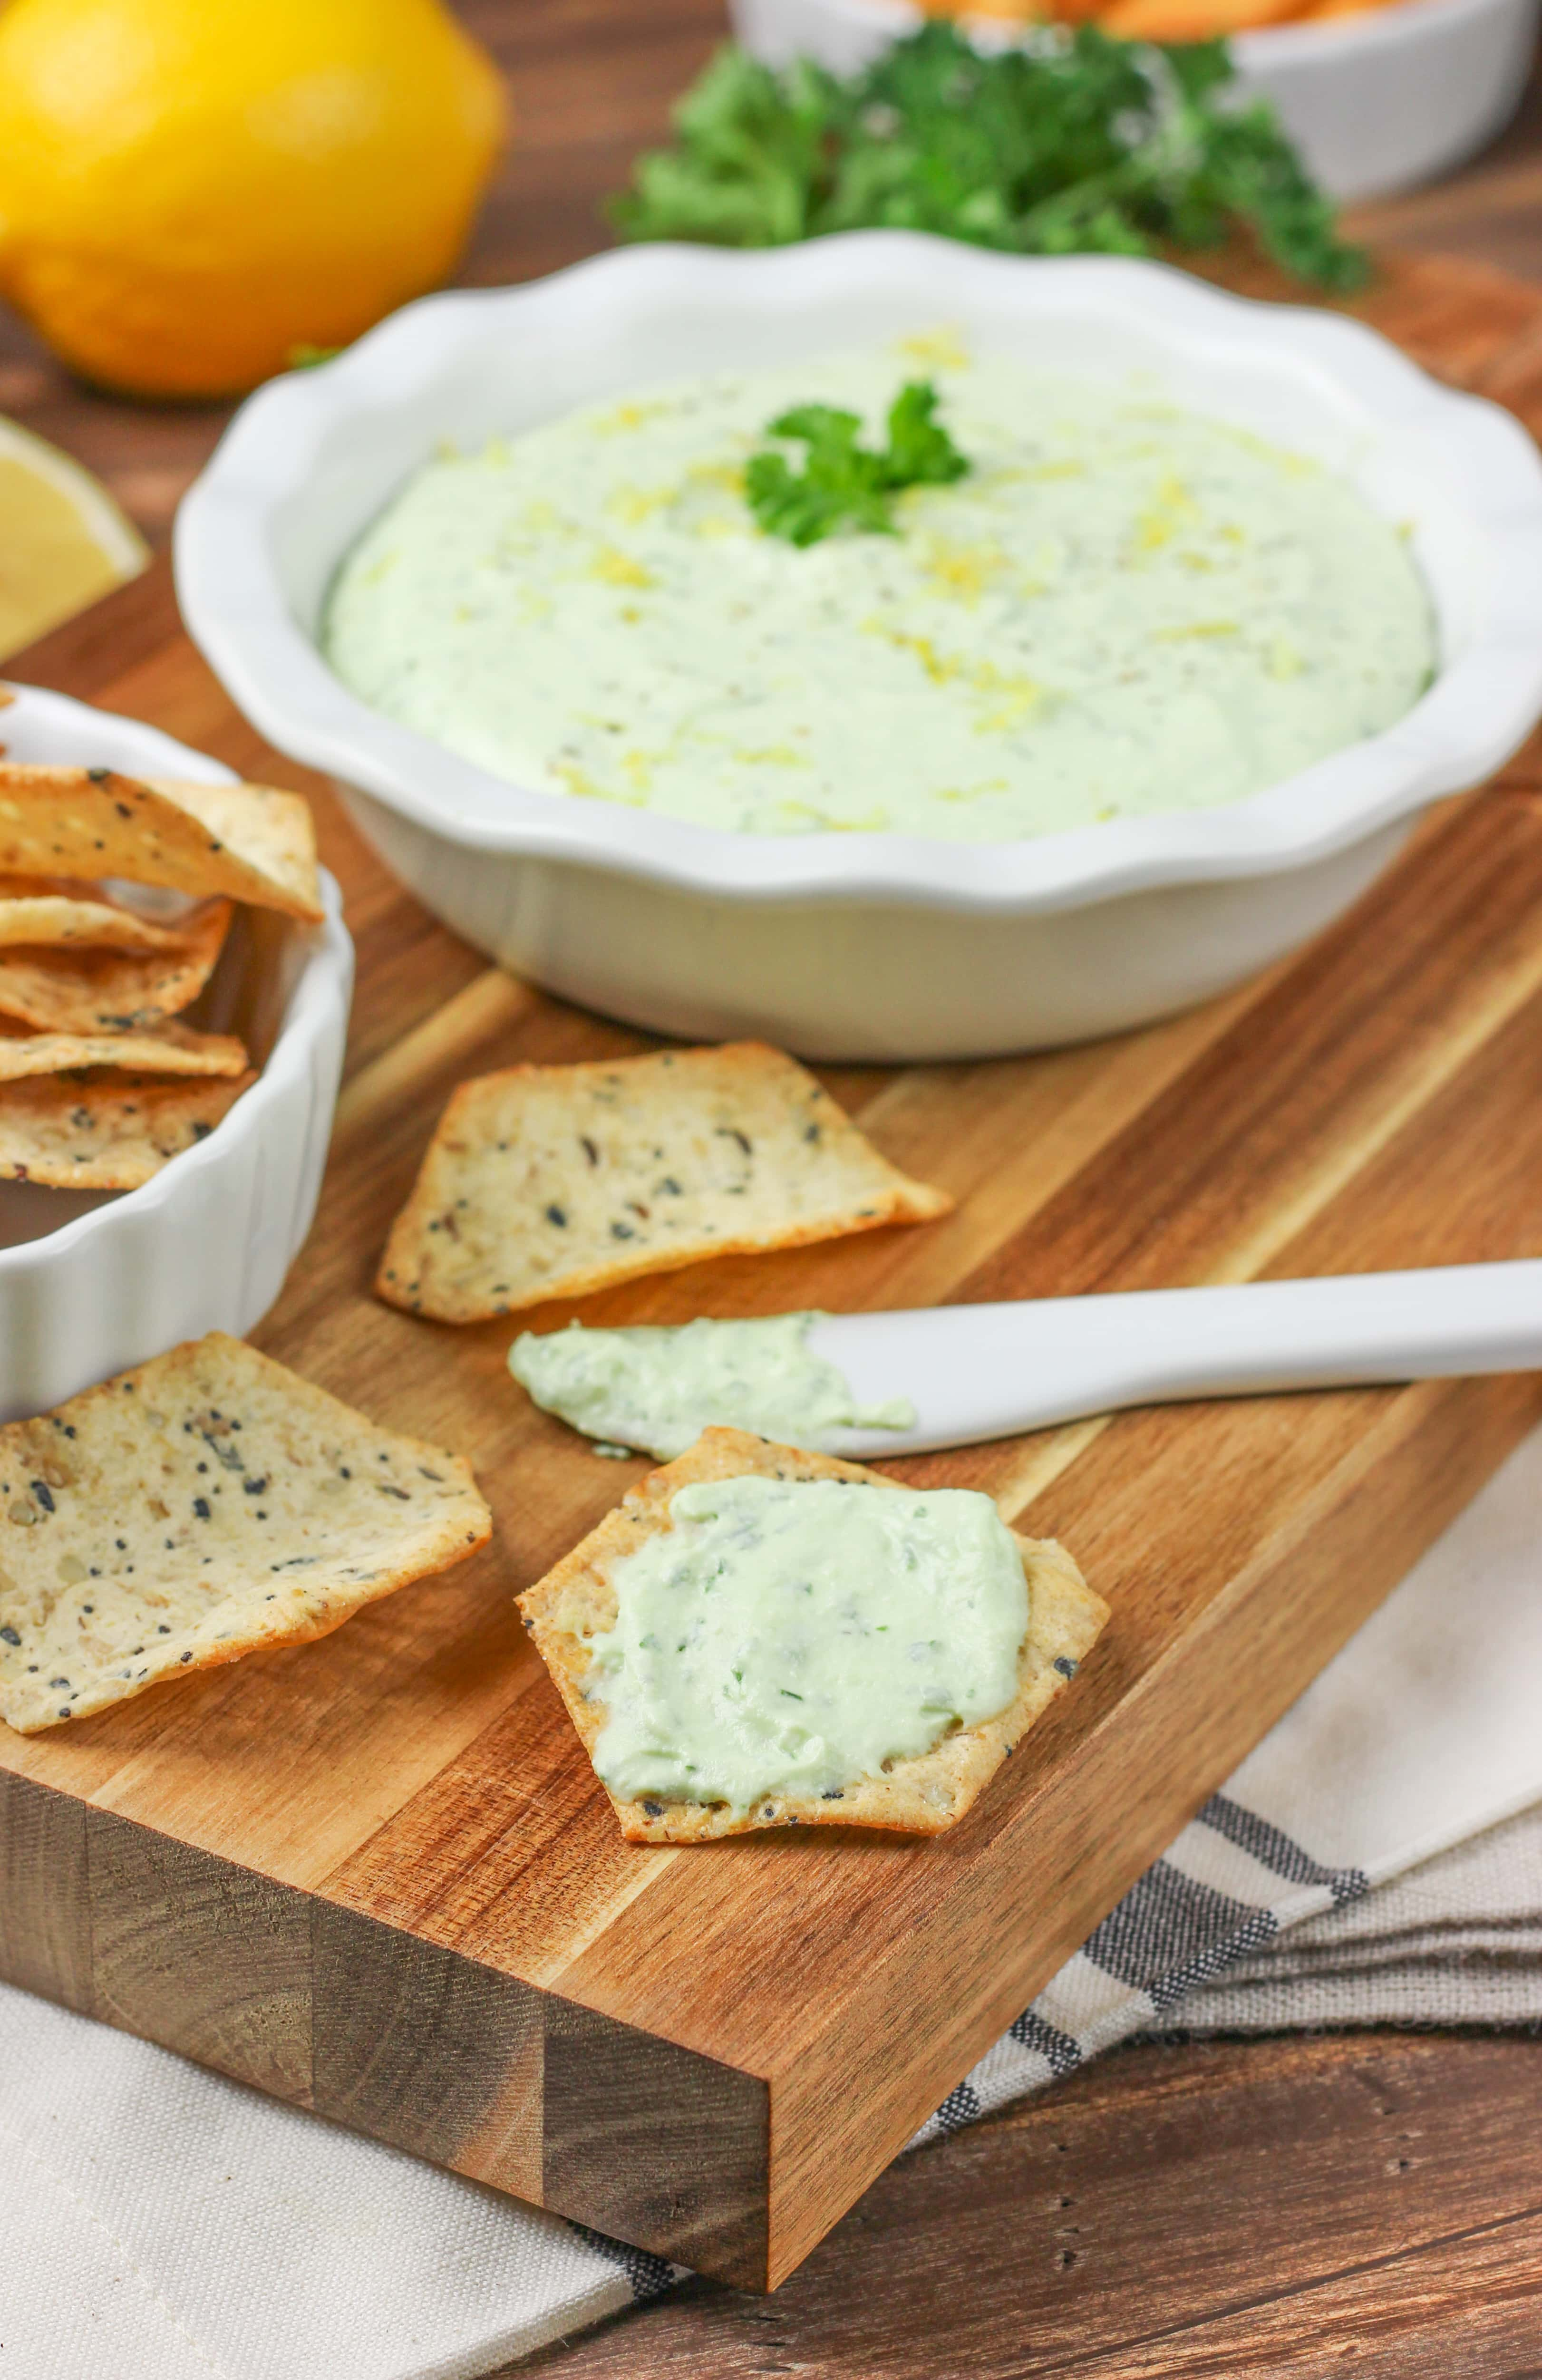 Creamy Lemon Herb Feta Dip Recipe from A Kitchen Addiction